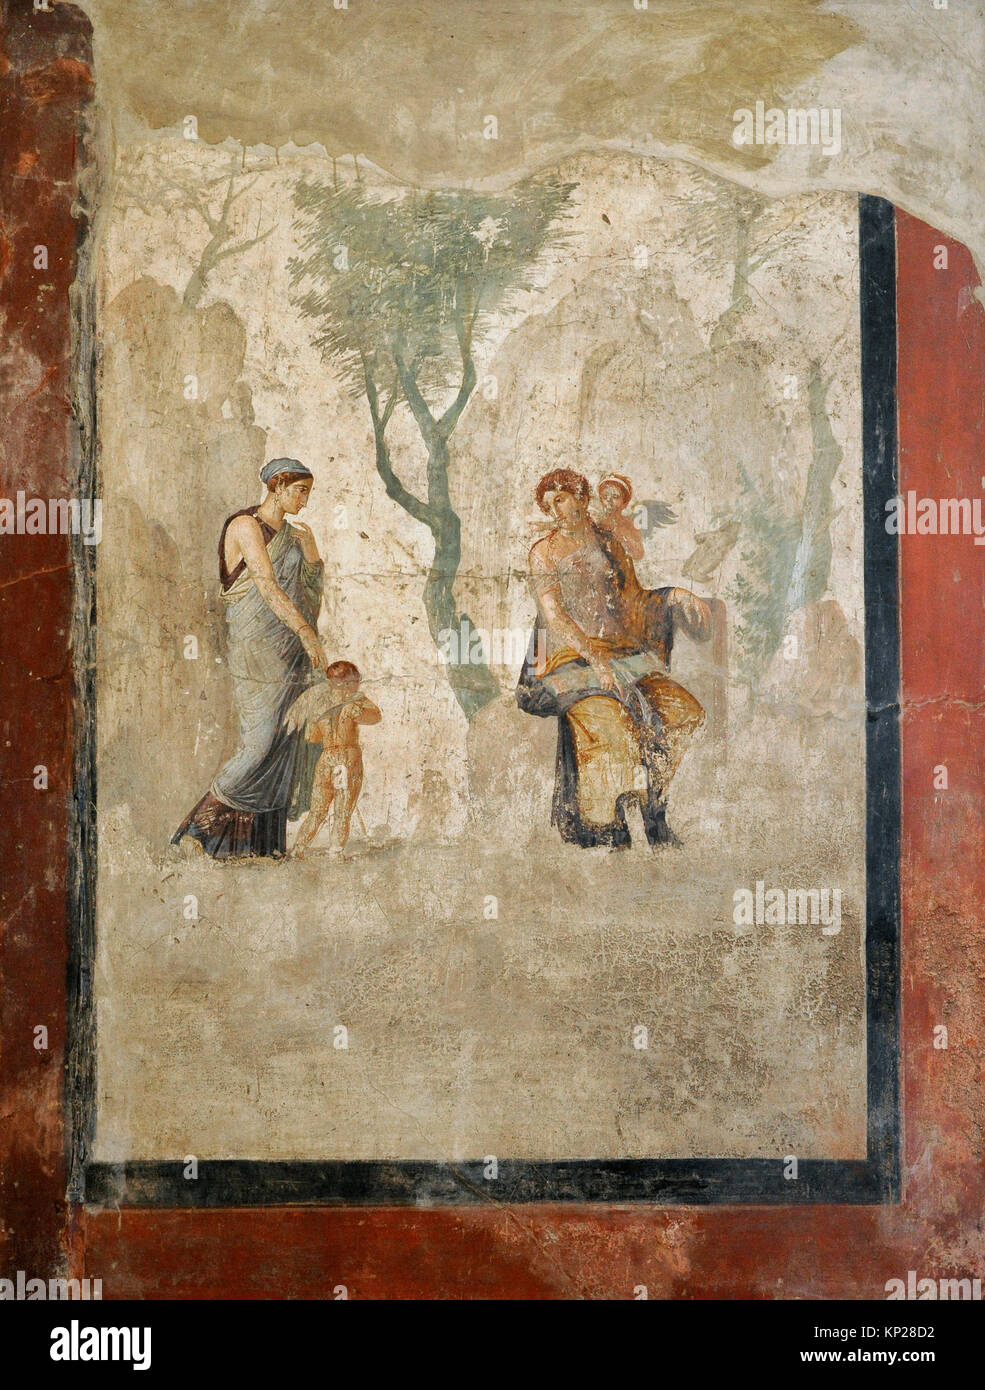 Roman fresco depicting Eros  carried by Peitho, the persuasion, before Anteros and Venus. 1st century AD. House - Stock Image